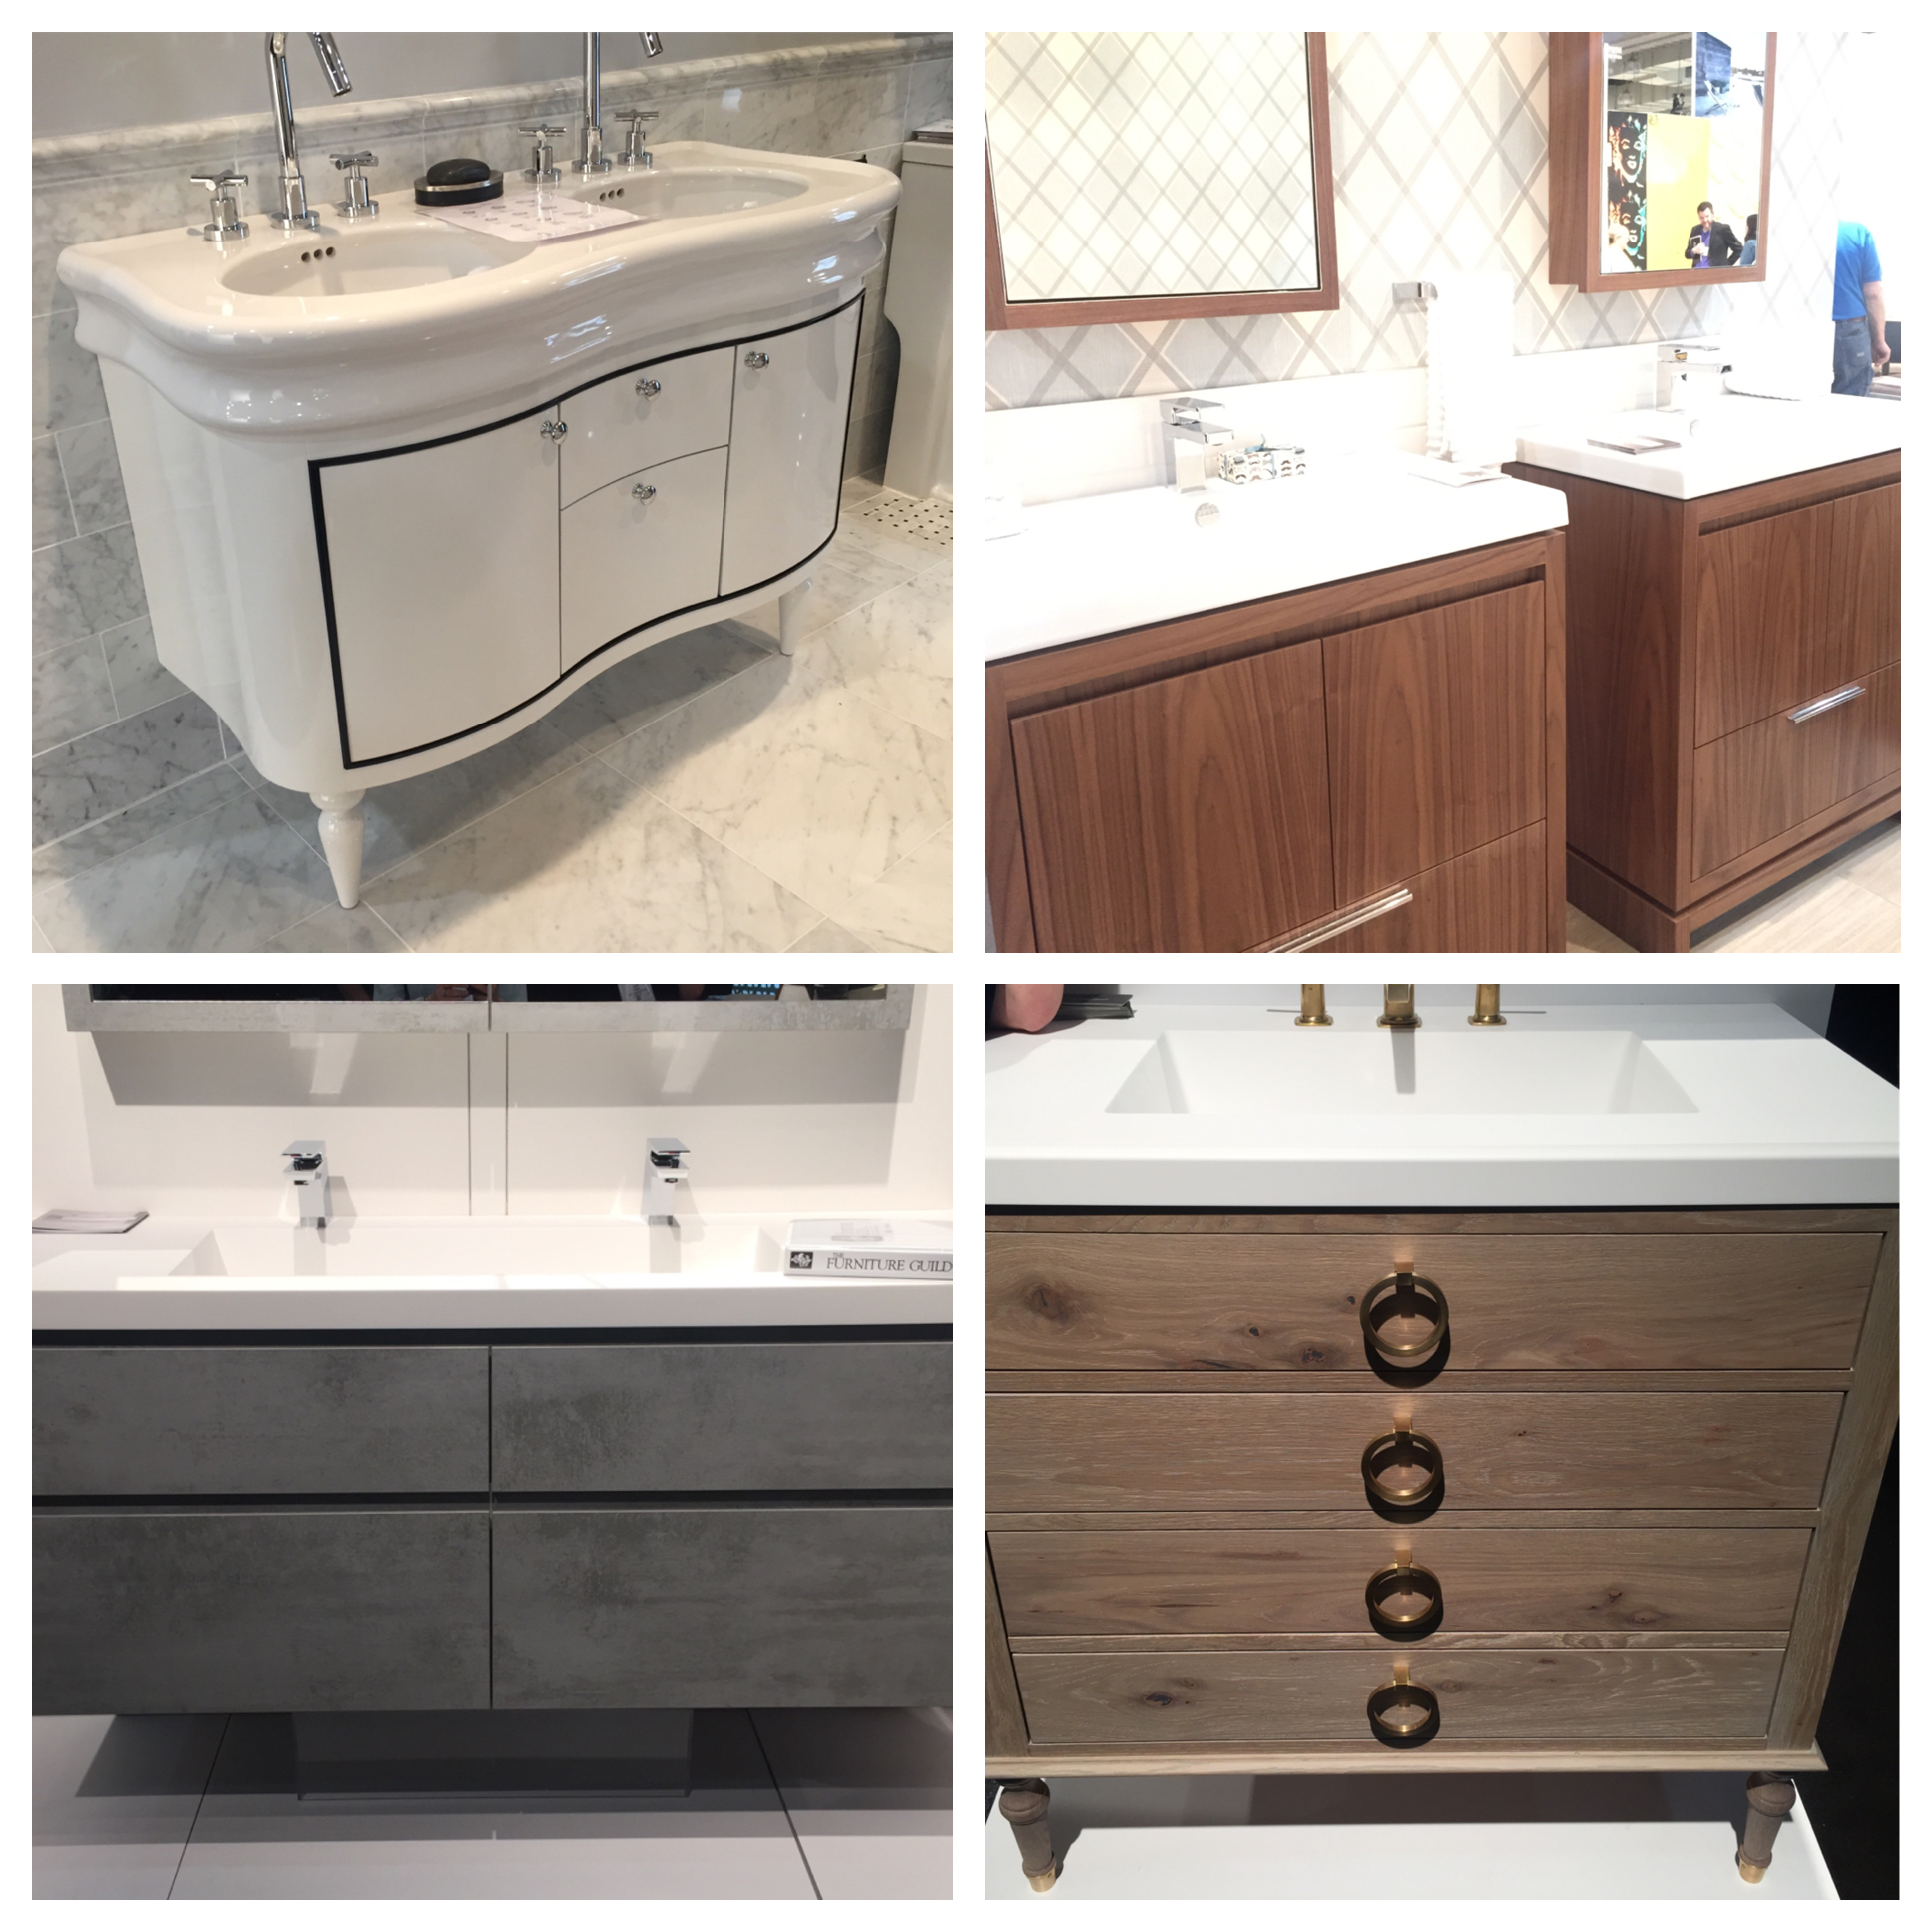 Beau Vanities: Top Row, Lacavau2013 An Italian Brand Based In Chicago With Beautiful  Modern Pieces A Full Range Of Finishes And The Ability To Customize Almost  ...